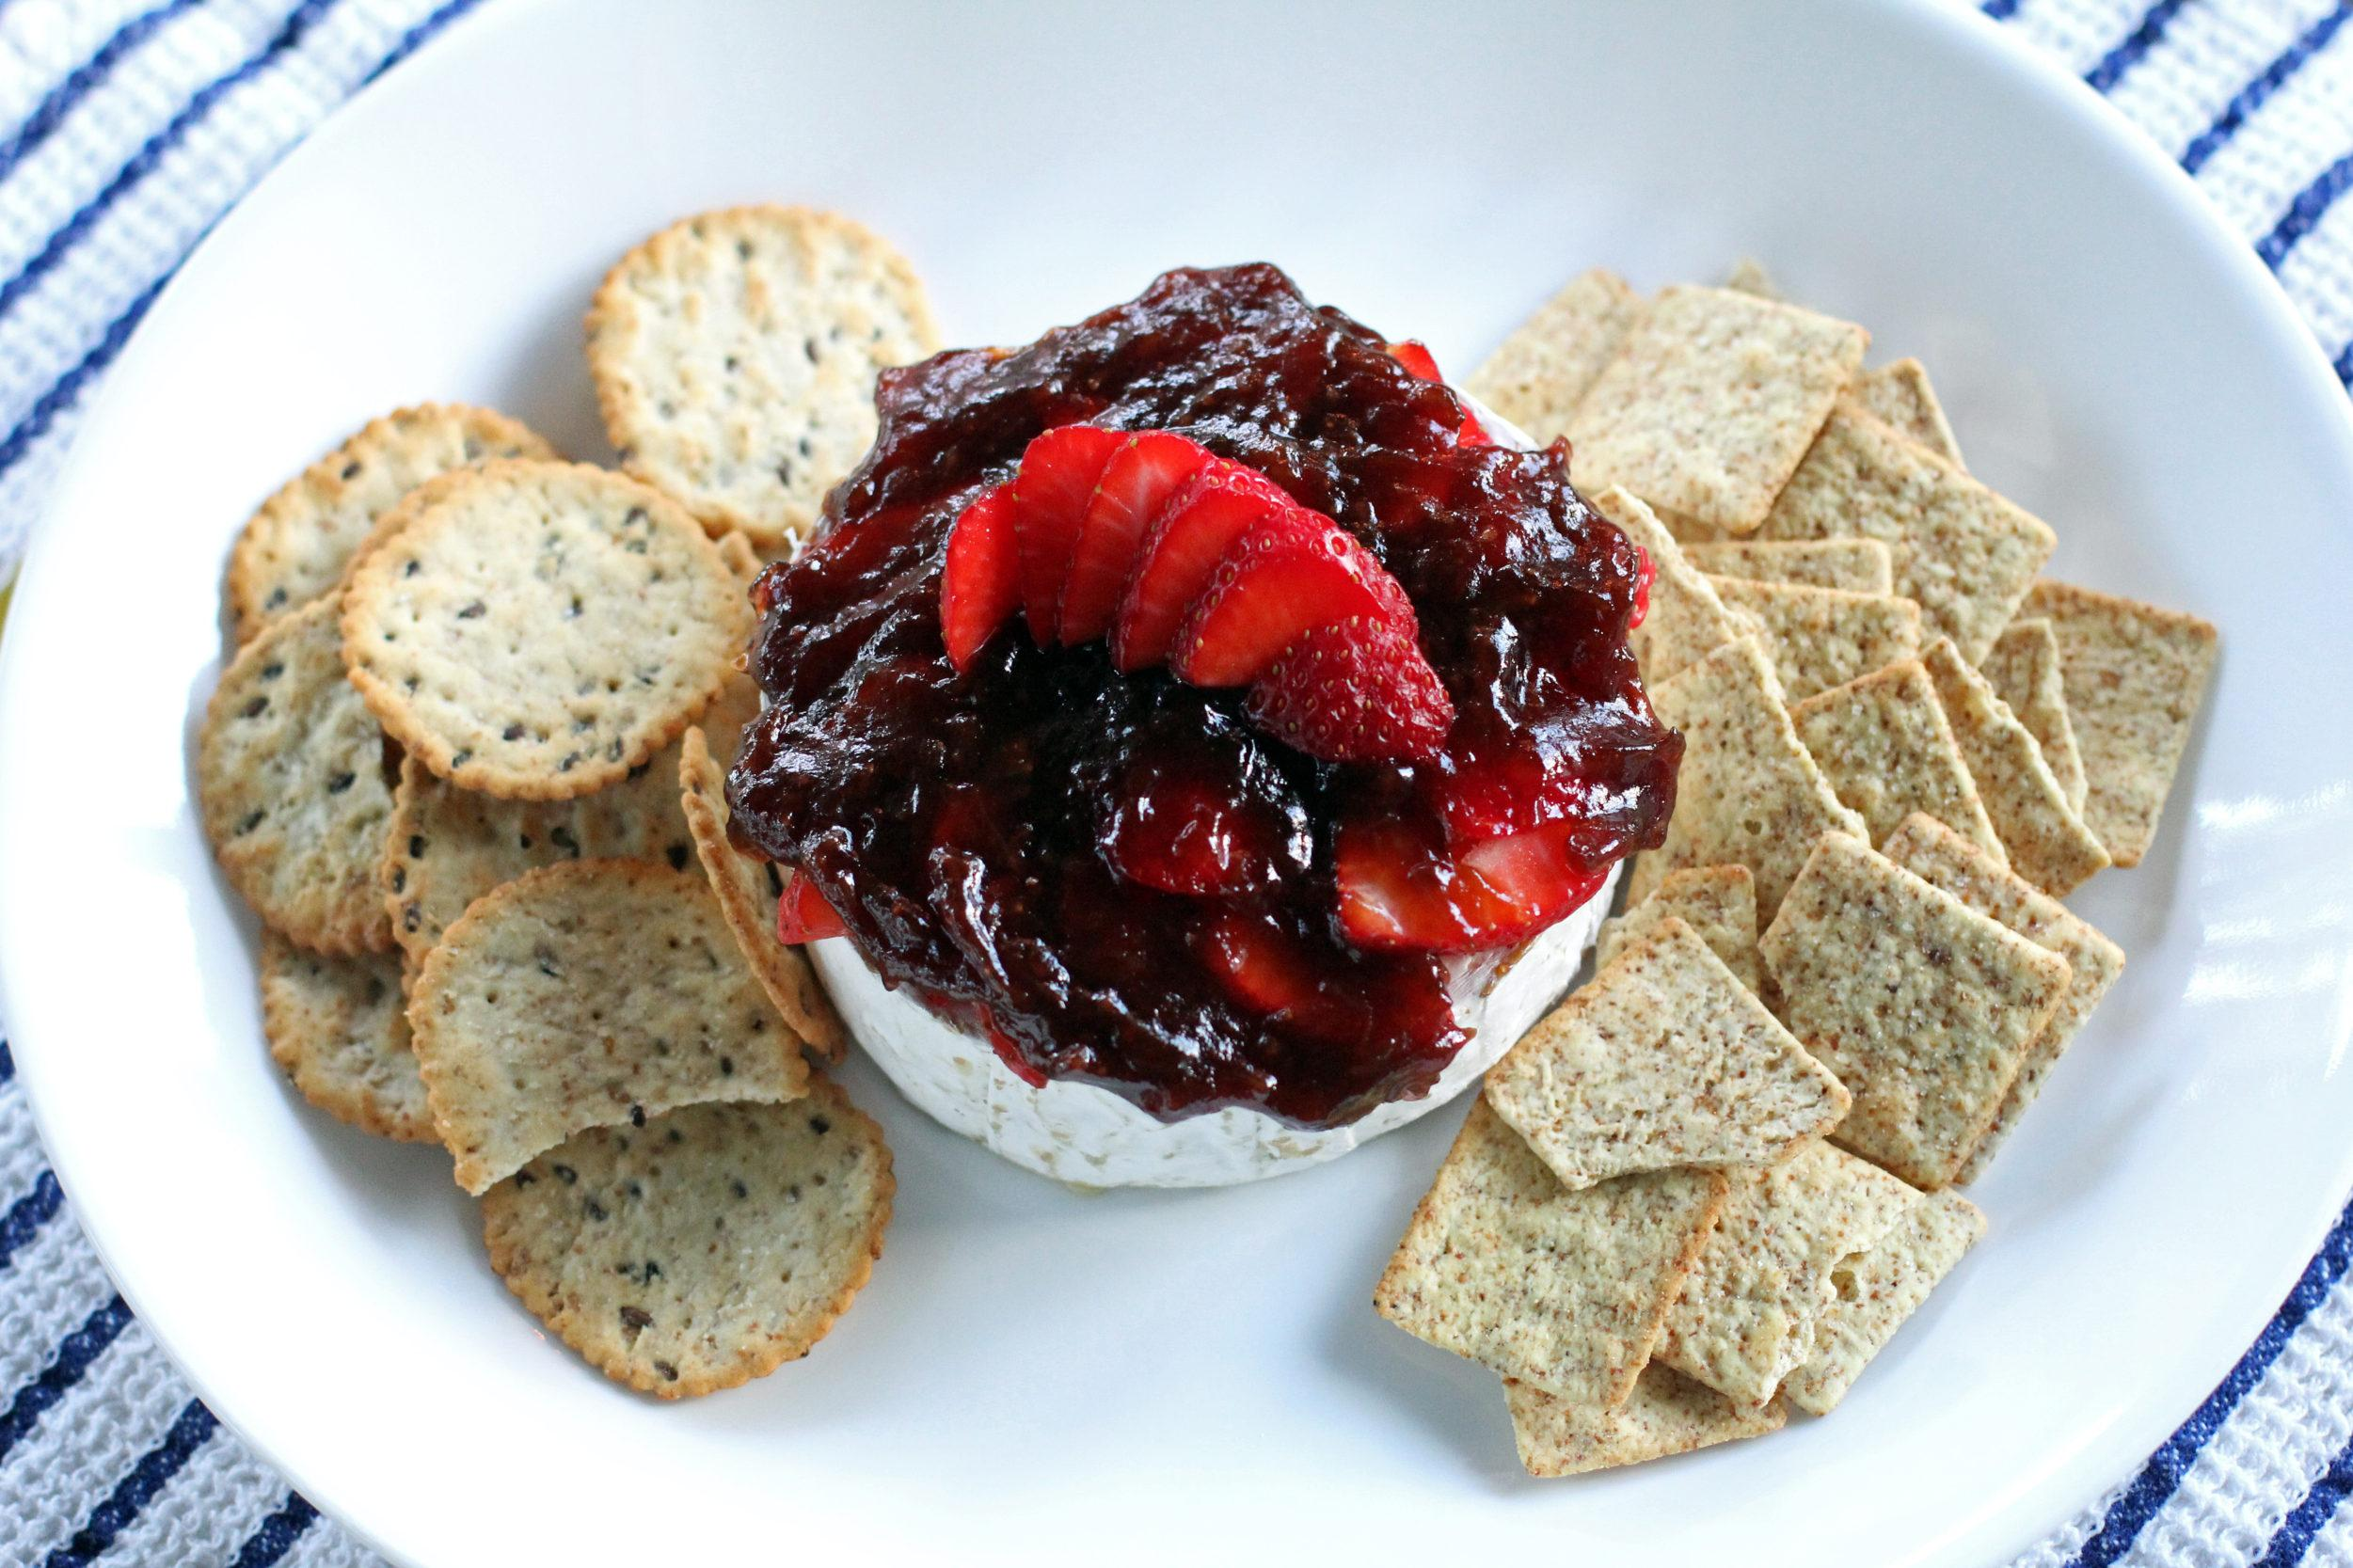 Strawberry Balsamic Baked Brie